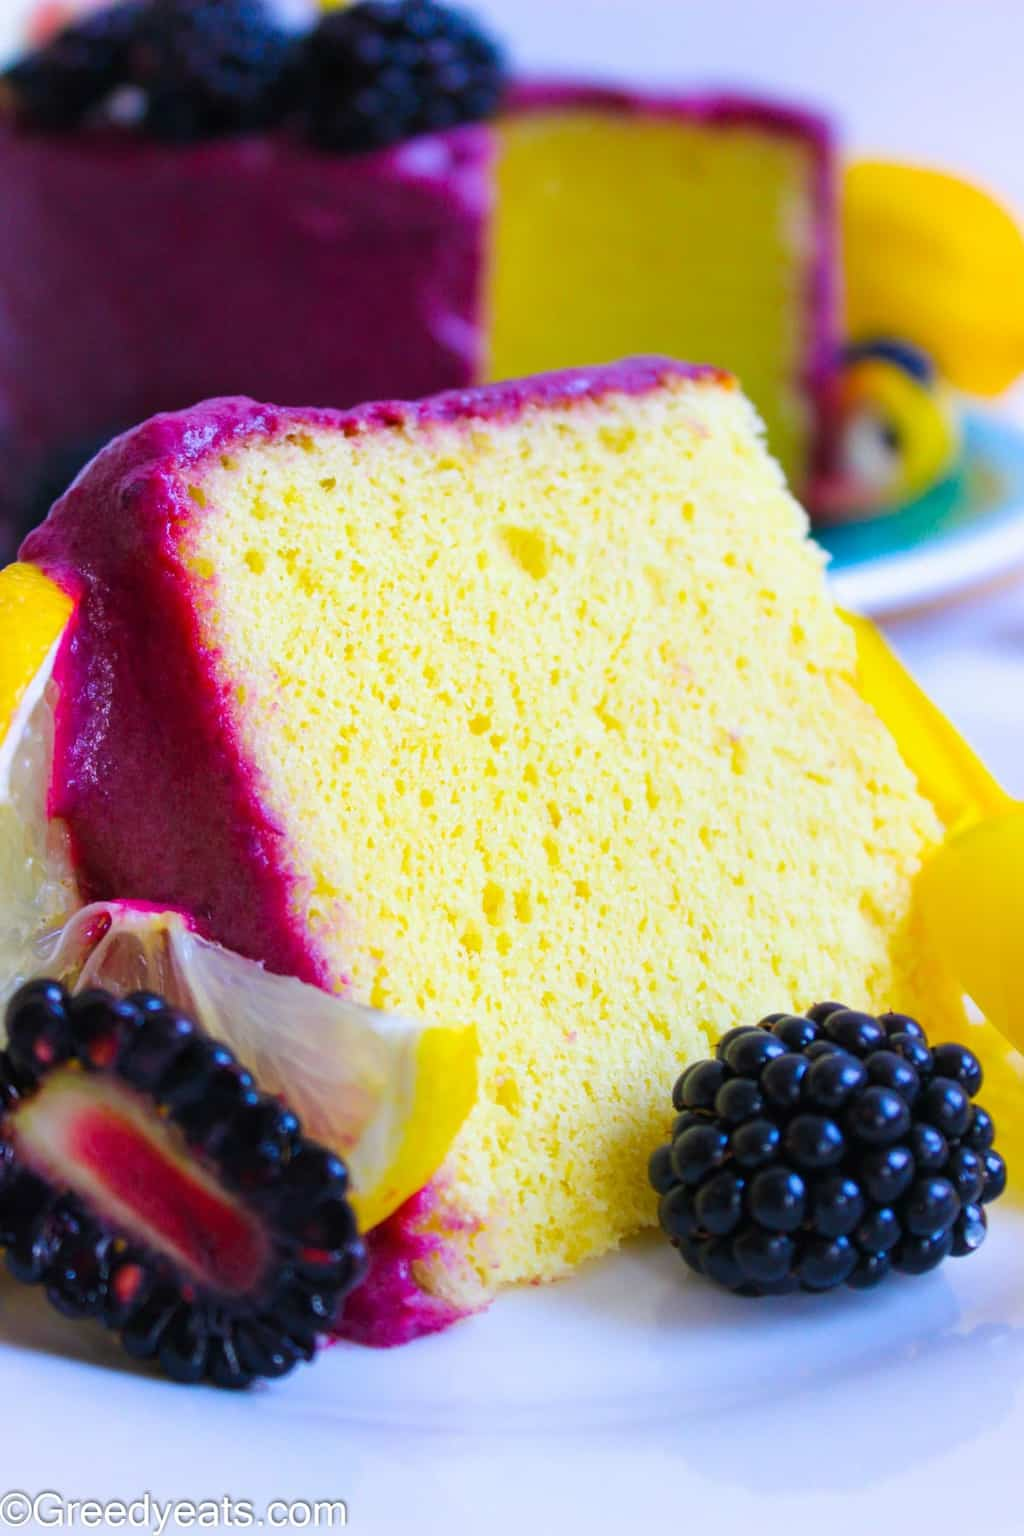 Soft, fluffy and velvety Lemon Chiffon Cake Recipe made without a tube pan.